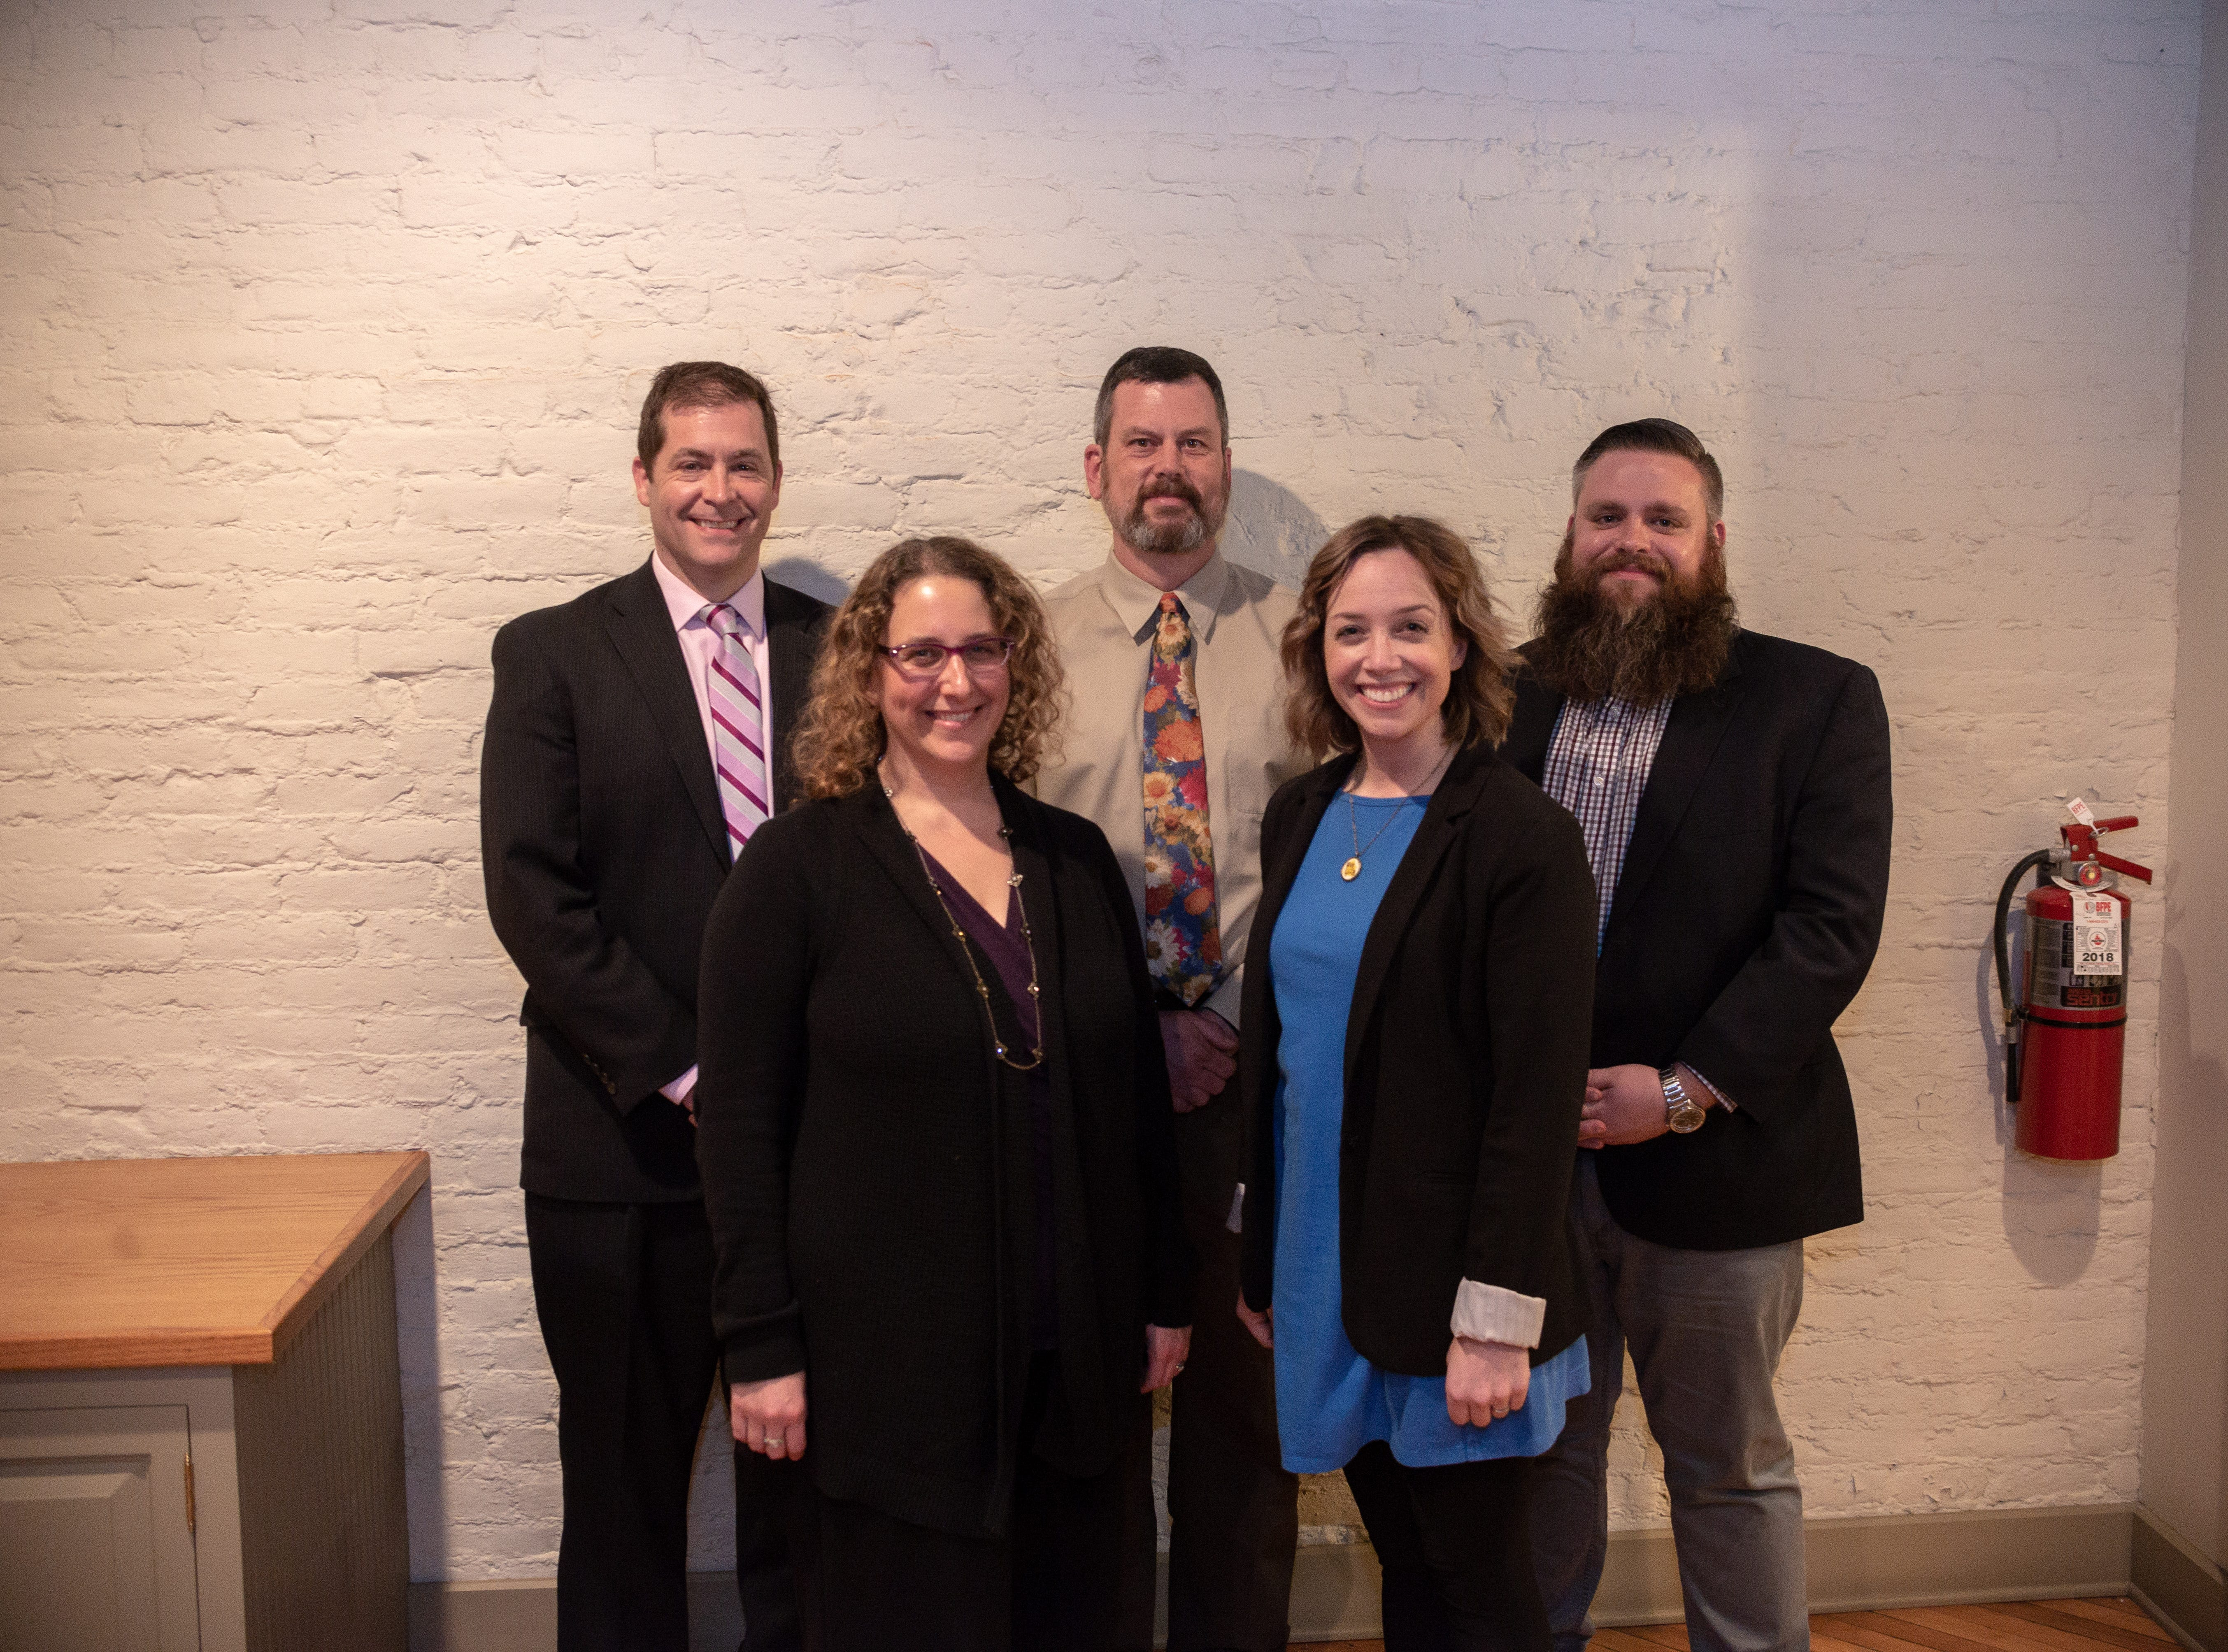 YORK (January 24, 2019)--The White Rose Leadership Institute is pleased to announce that five local nonprofit leaders have been named to the 2019 class of York Federal Fellows. This yearÕs fellows include Dr. Silas Chamberlin, Vice President, Economic & Community Development at York County Economic Alliance; Meagan Given, Executive Director of Give Local York; Dr. Shari Kim, CEO of Susquehanna Valley Community Mental Health Services; Tom O'Connor, President of Leg Up Farm; and Tony Schweitzer, Executive Director of Bell Socialization Services.The York Federal Fellows program offers outstanding nonprofit executive leaders the opportunity to spend a year developing professionally and personally while expanding their leadership skills. With a grant of up to $5,000 each, the executives pursue their development and connect with their nonprofit peers during regular workshop sessions throughout the year. Pictured from left are Tom OÕConnor, Shari Kim, Tony Schweitzer, Meagan Given and Silas Chamberlin. submitted